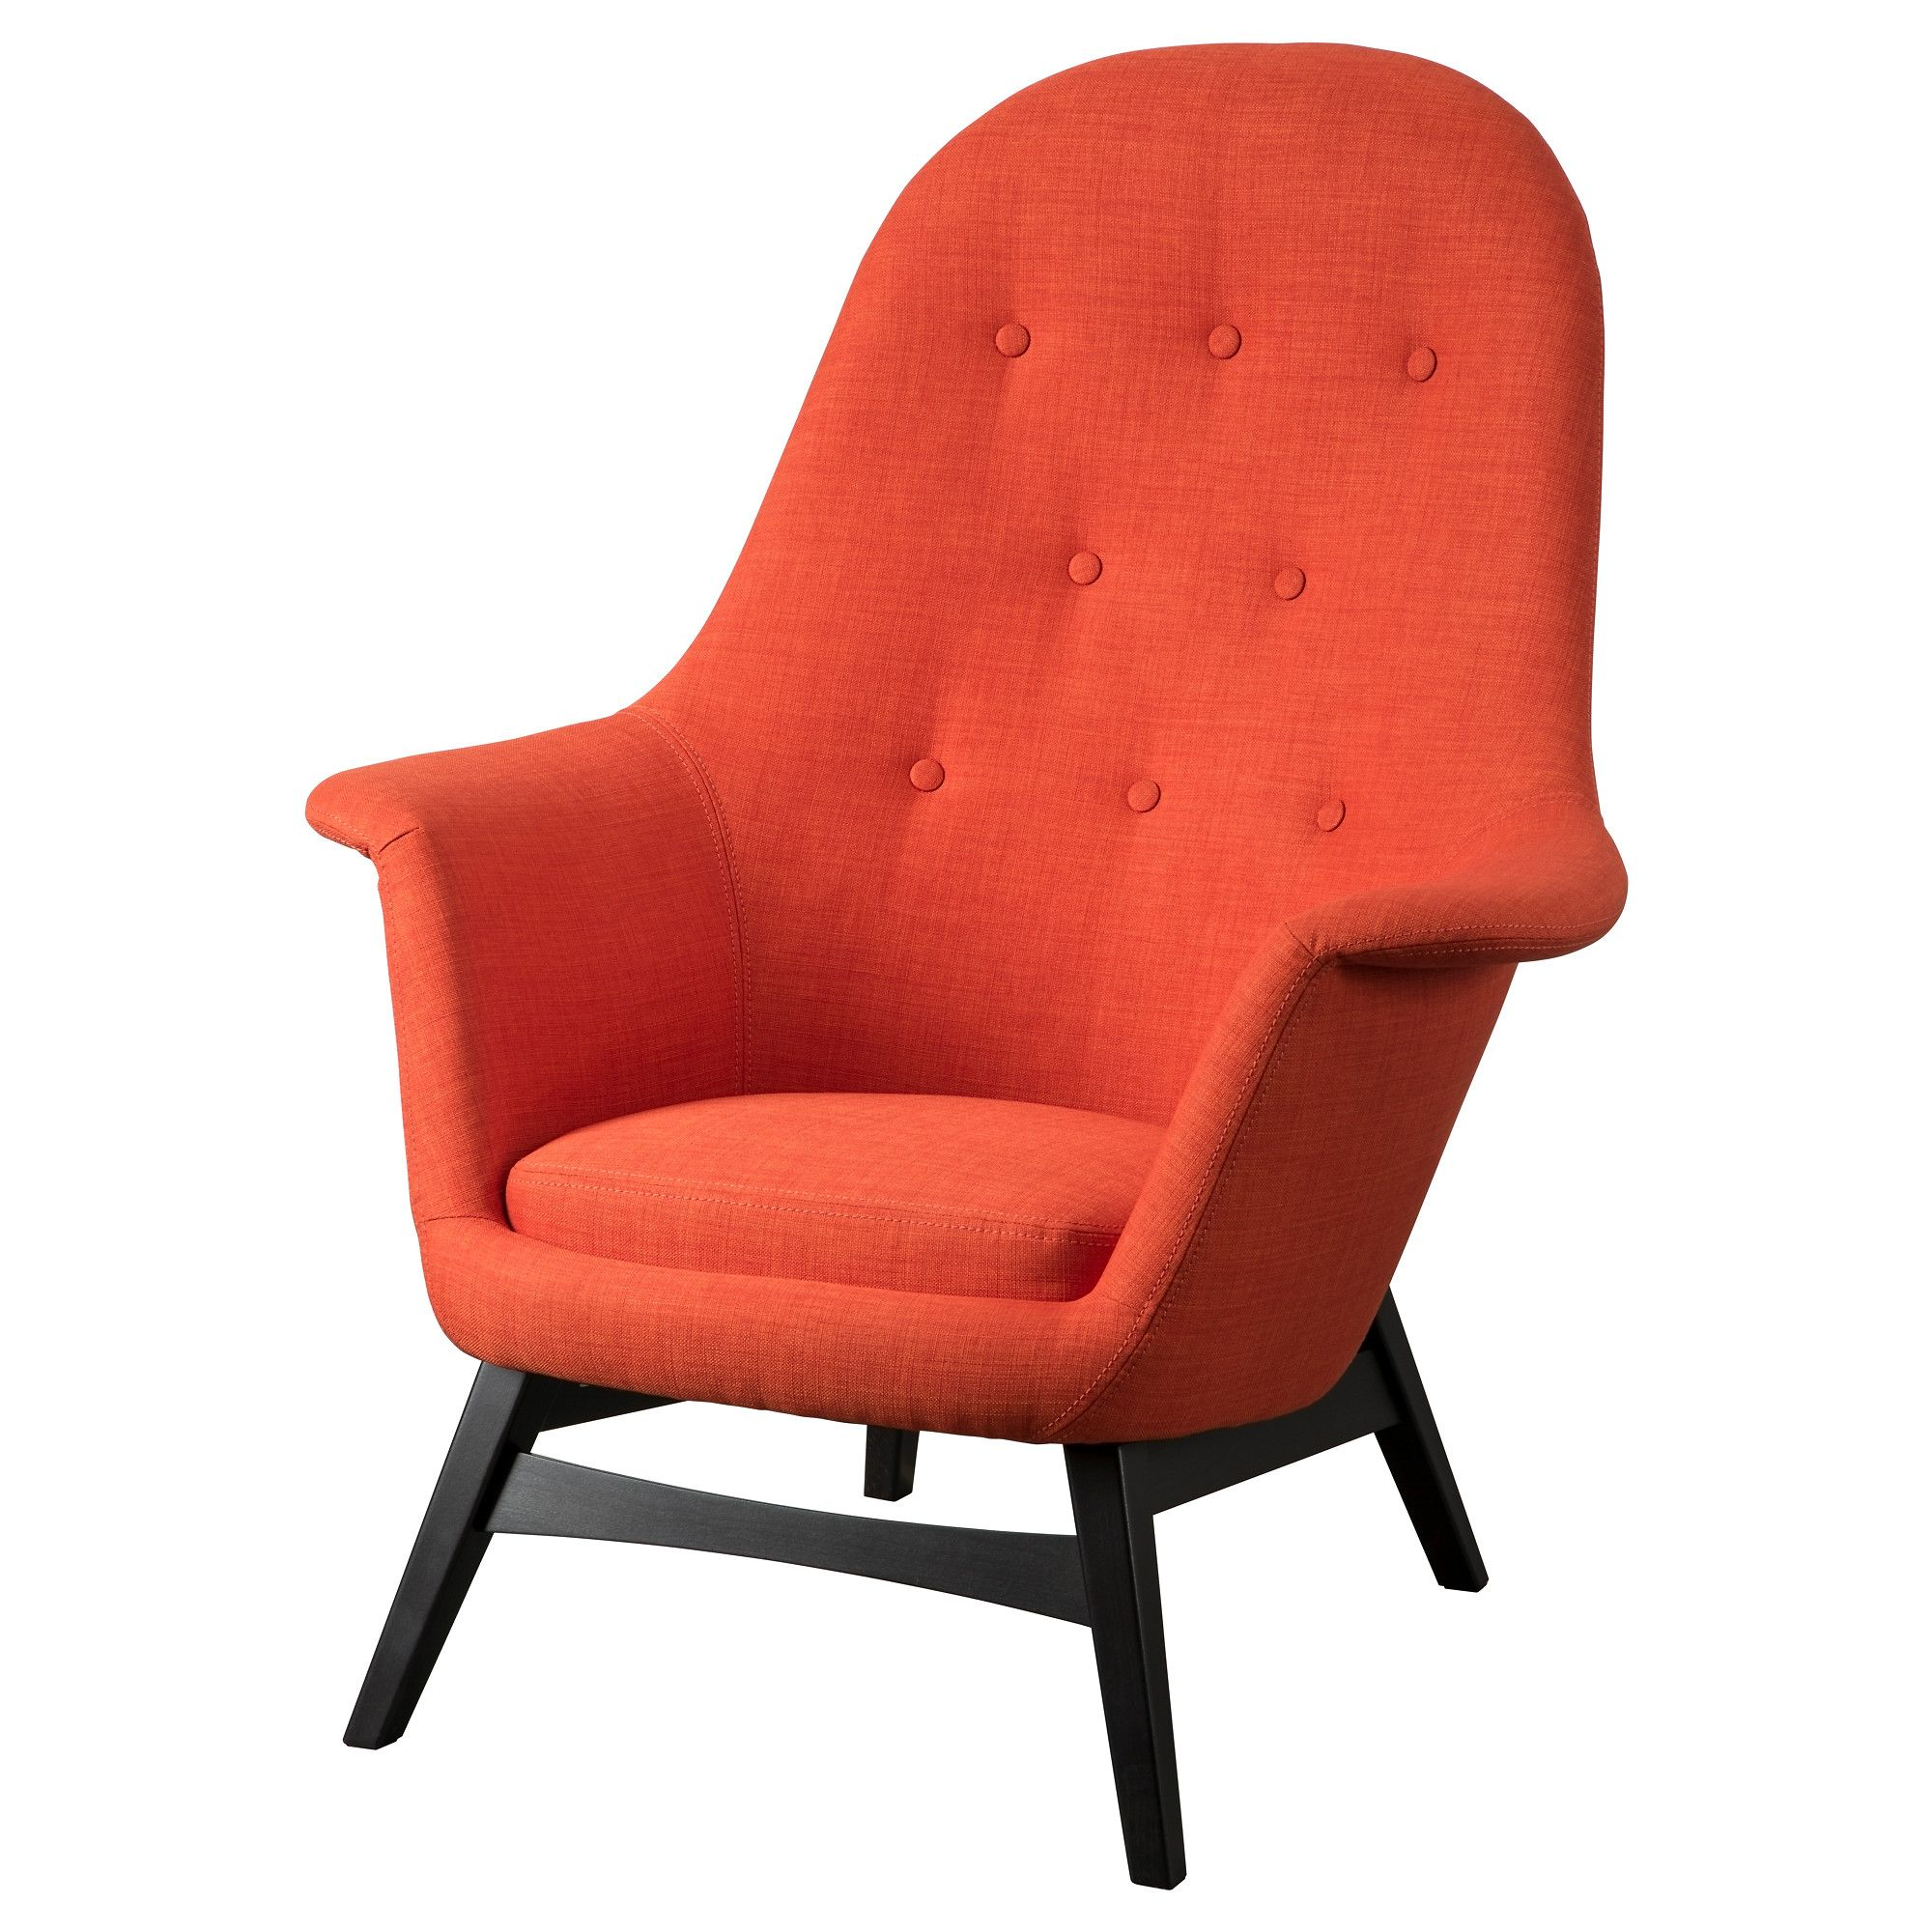 Sofa Ikea Ikea Benarp Armchair The High Back Gives Good Support For Your